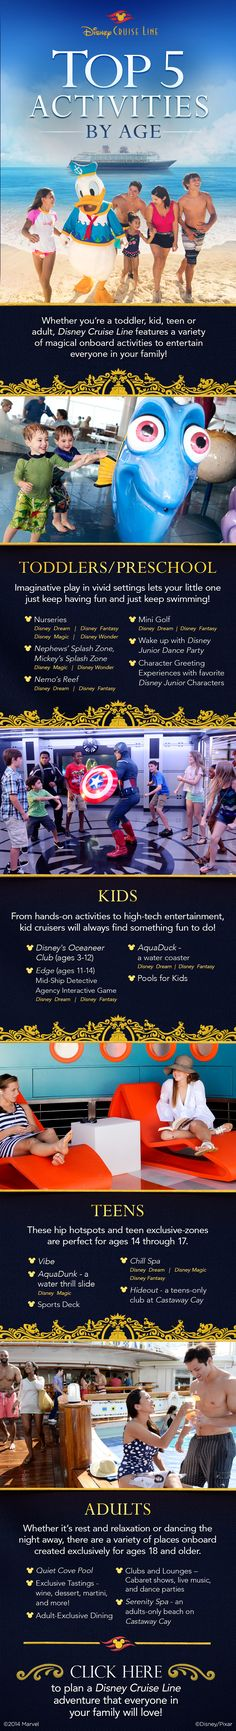 Check out these top 5 activities by age on a Disney Cruise vacation!